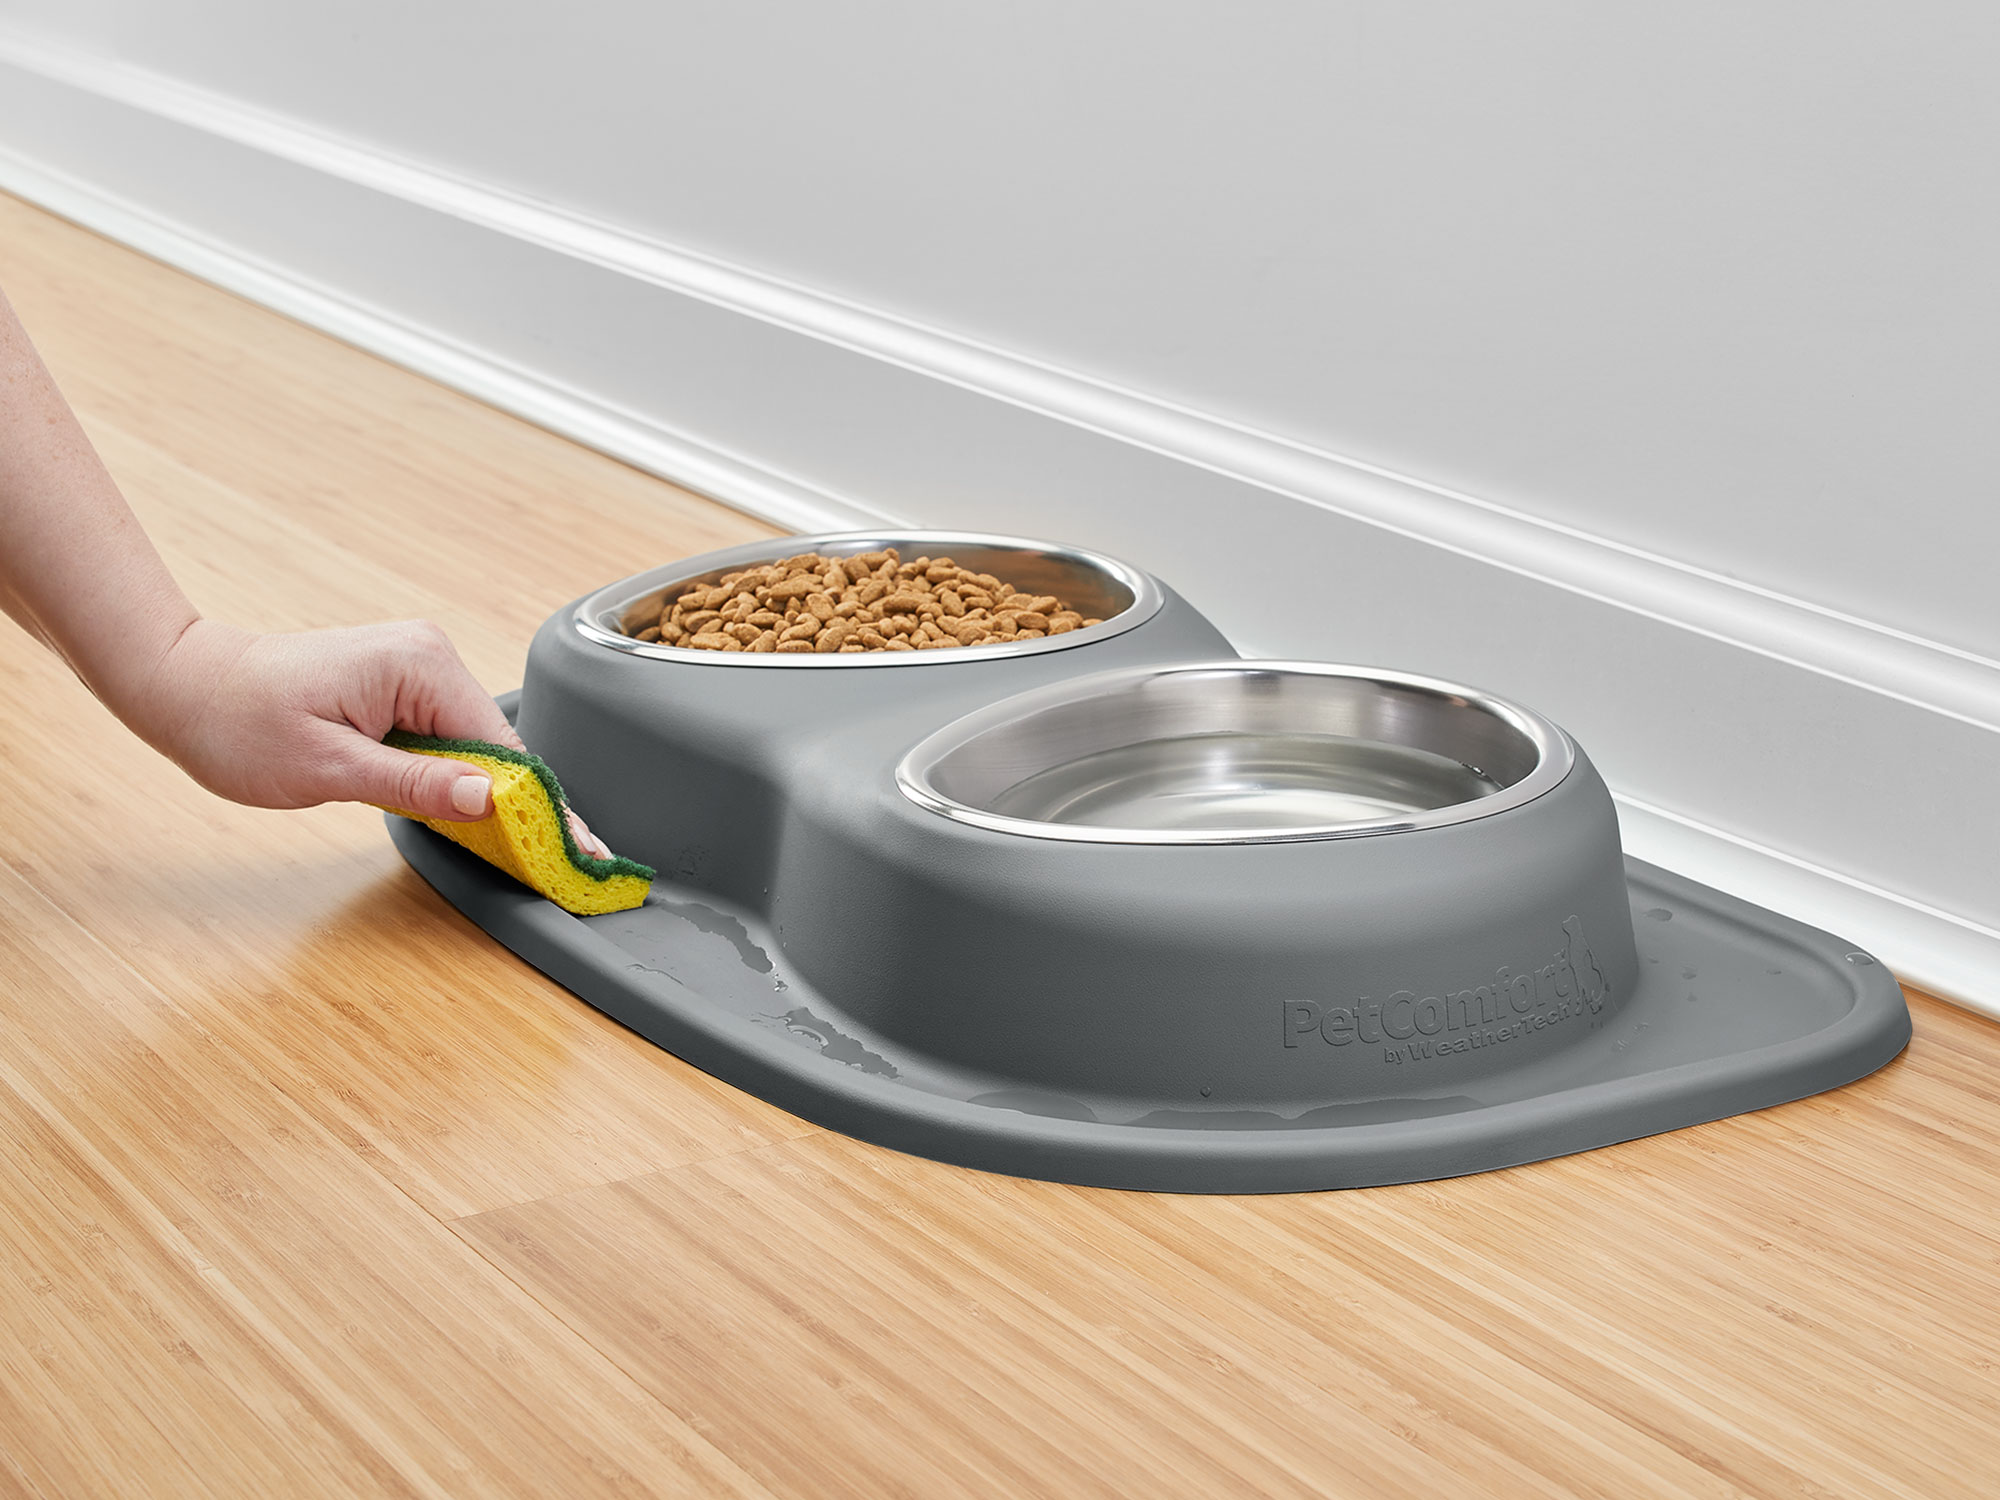 The pet feeding station, and the WeatherTech dog bowls are easy to clean and dishwasher safe!